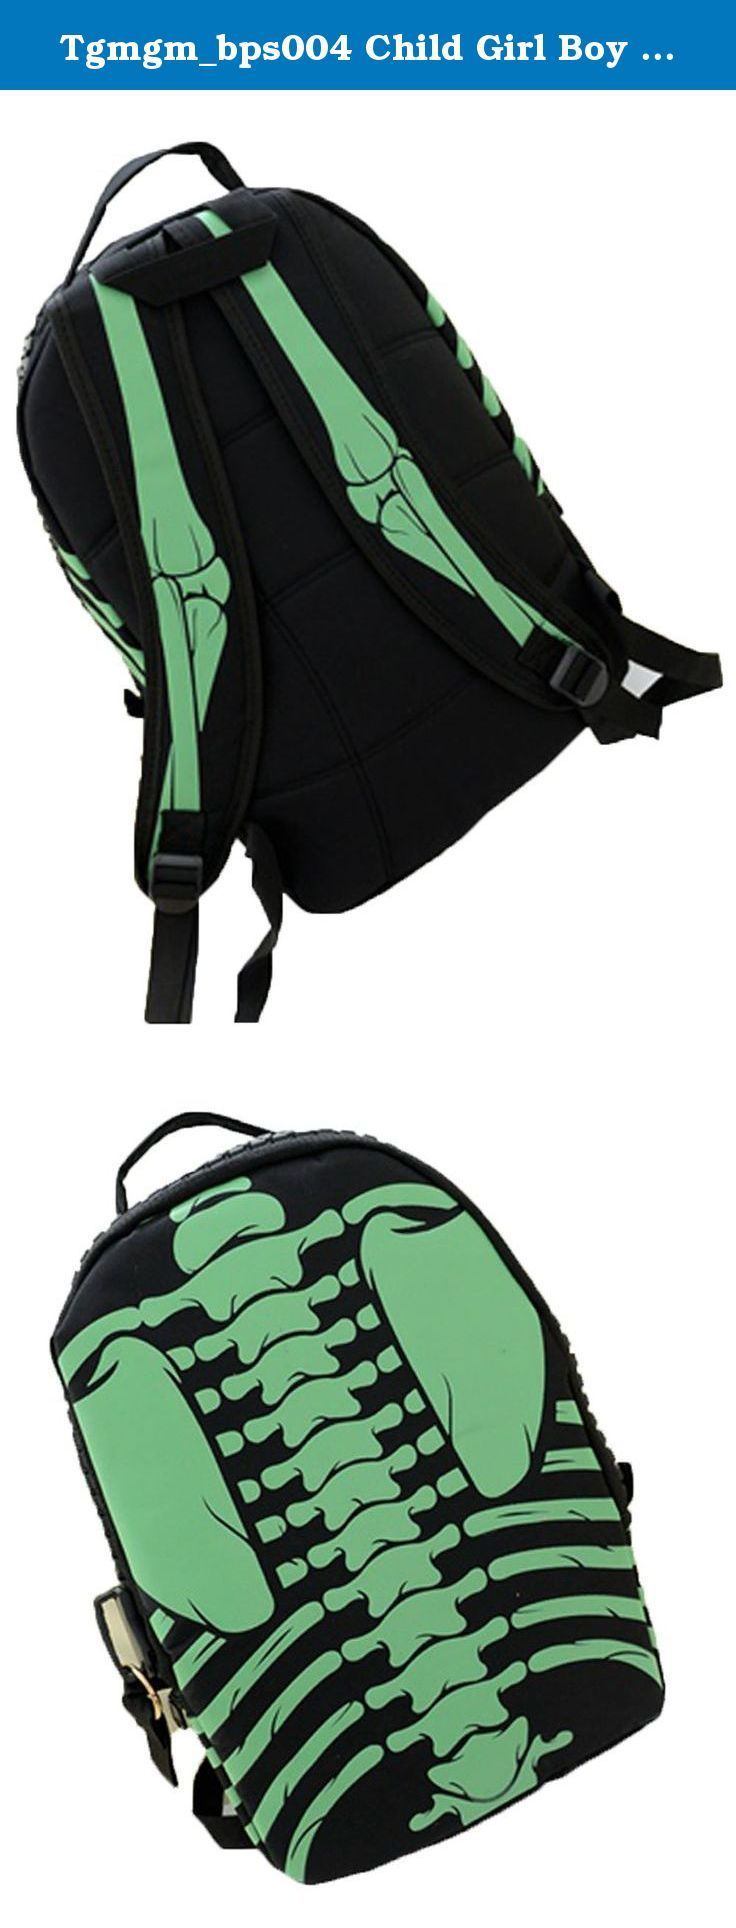 Tgmgm_bps004 Child Girl Boy Skull Bone Backpack Foldable Leisure Bag (Black-Green). This Backpack provides powerful breathable system, so the heat could quickly spread out. Thick surface layer of the shoulder strap is designed to relieve muscle and force the spine.